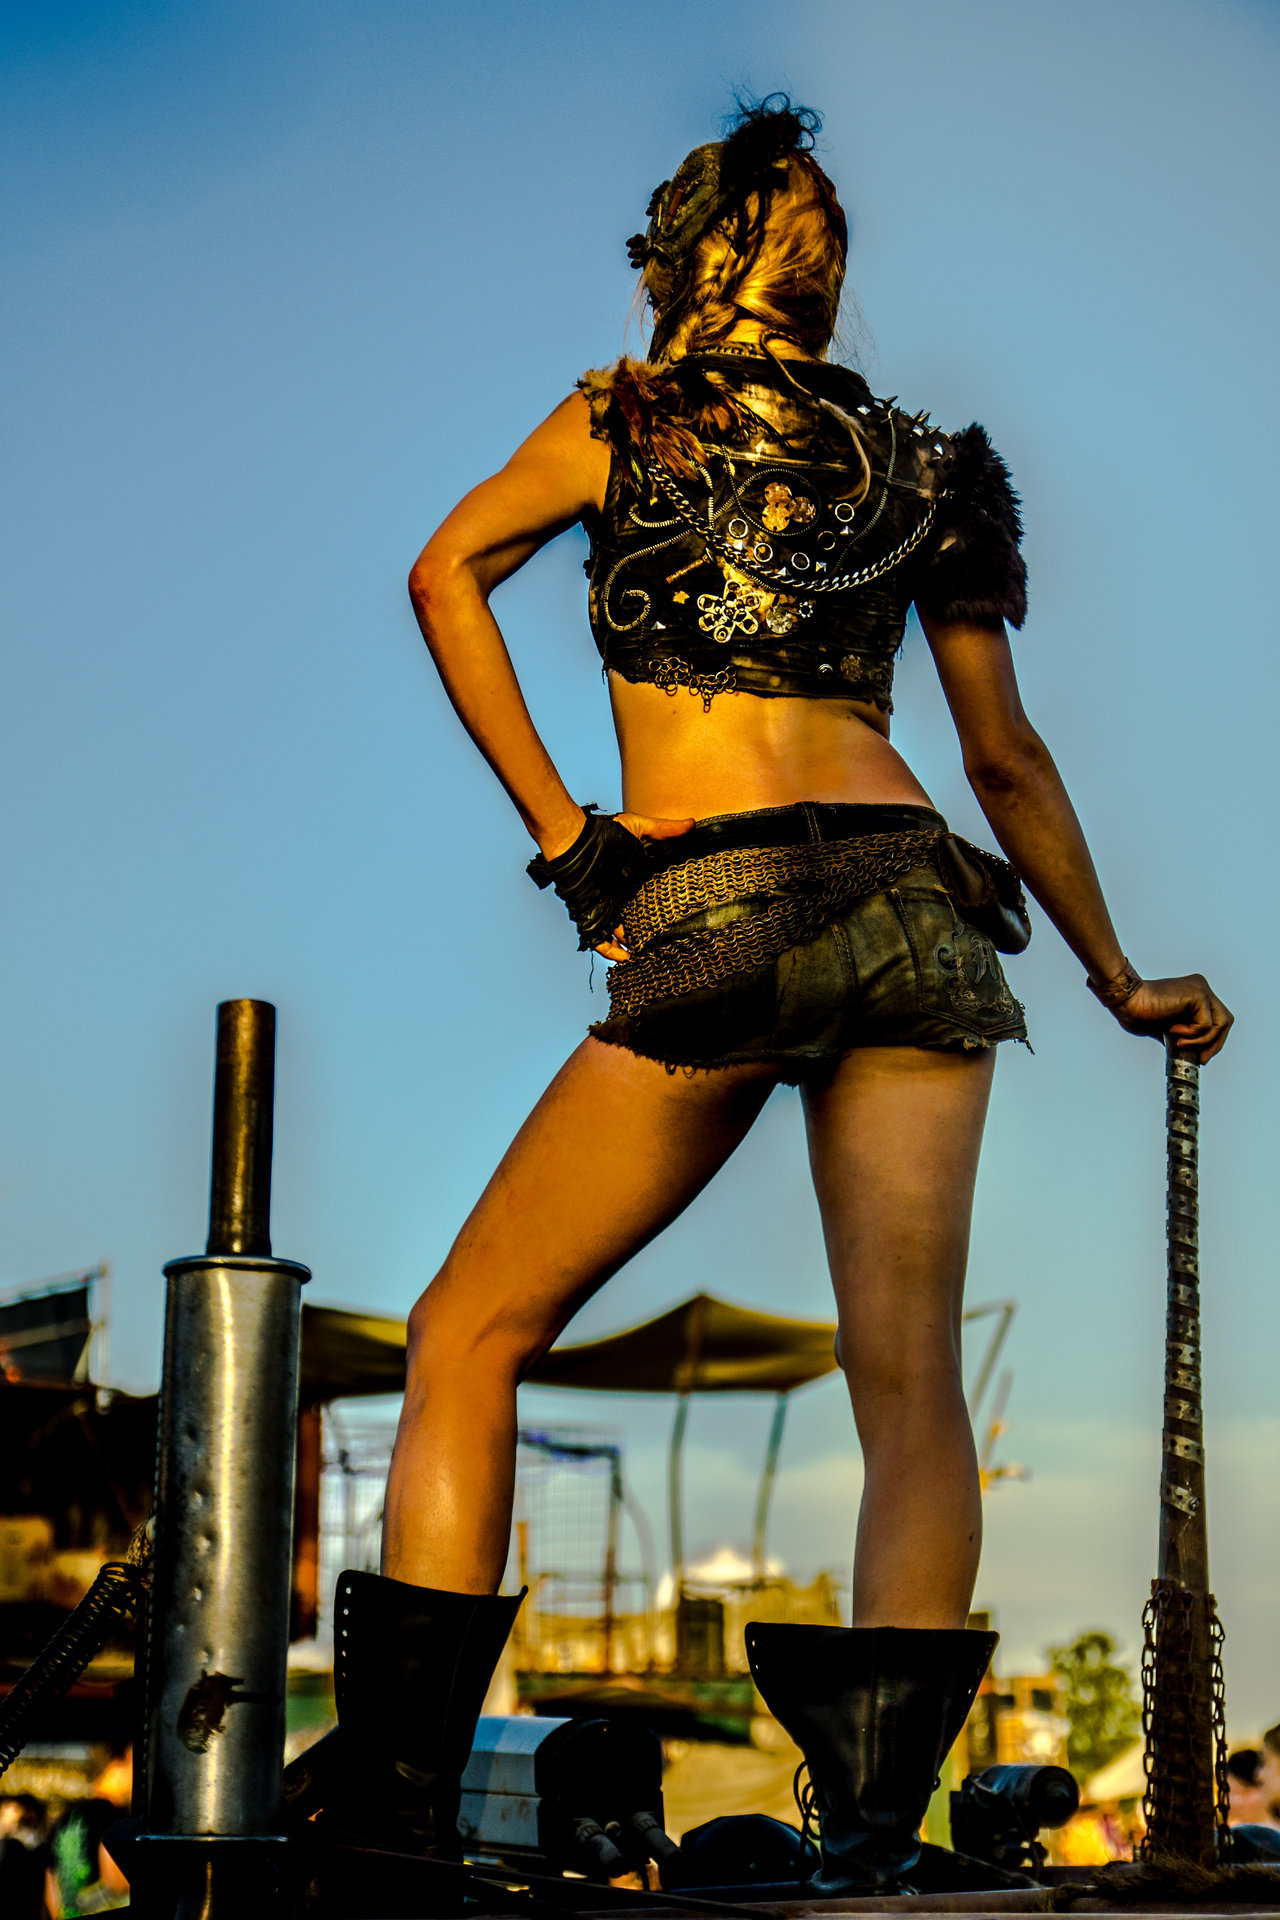 batgirl__1___wacken_2013_by_wasteland_warriors-d6jz8so